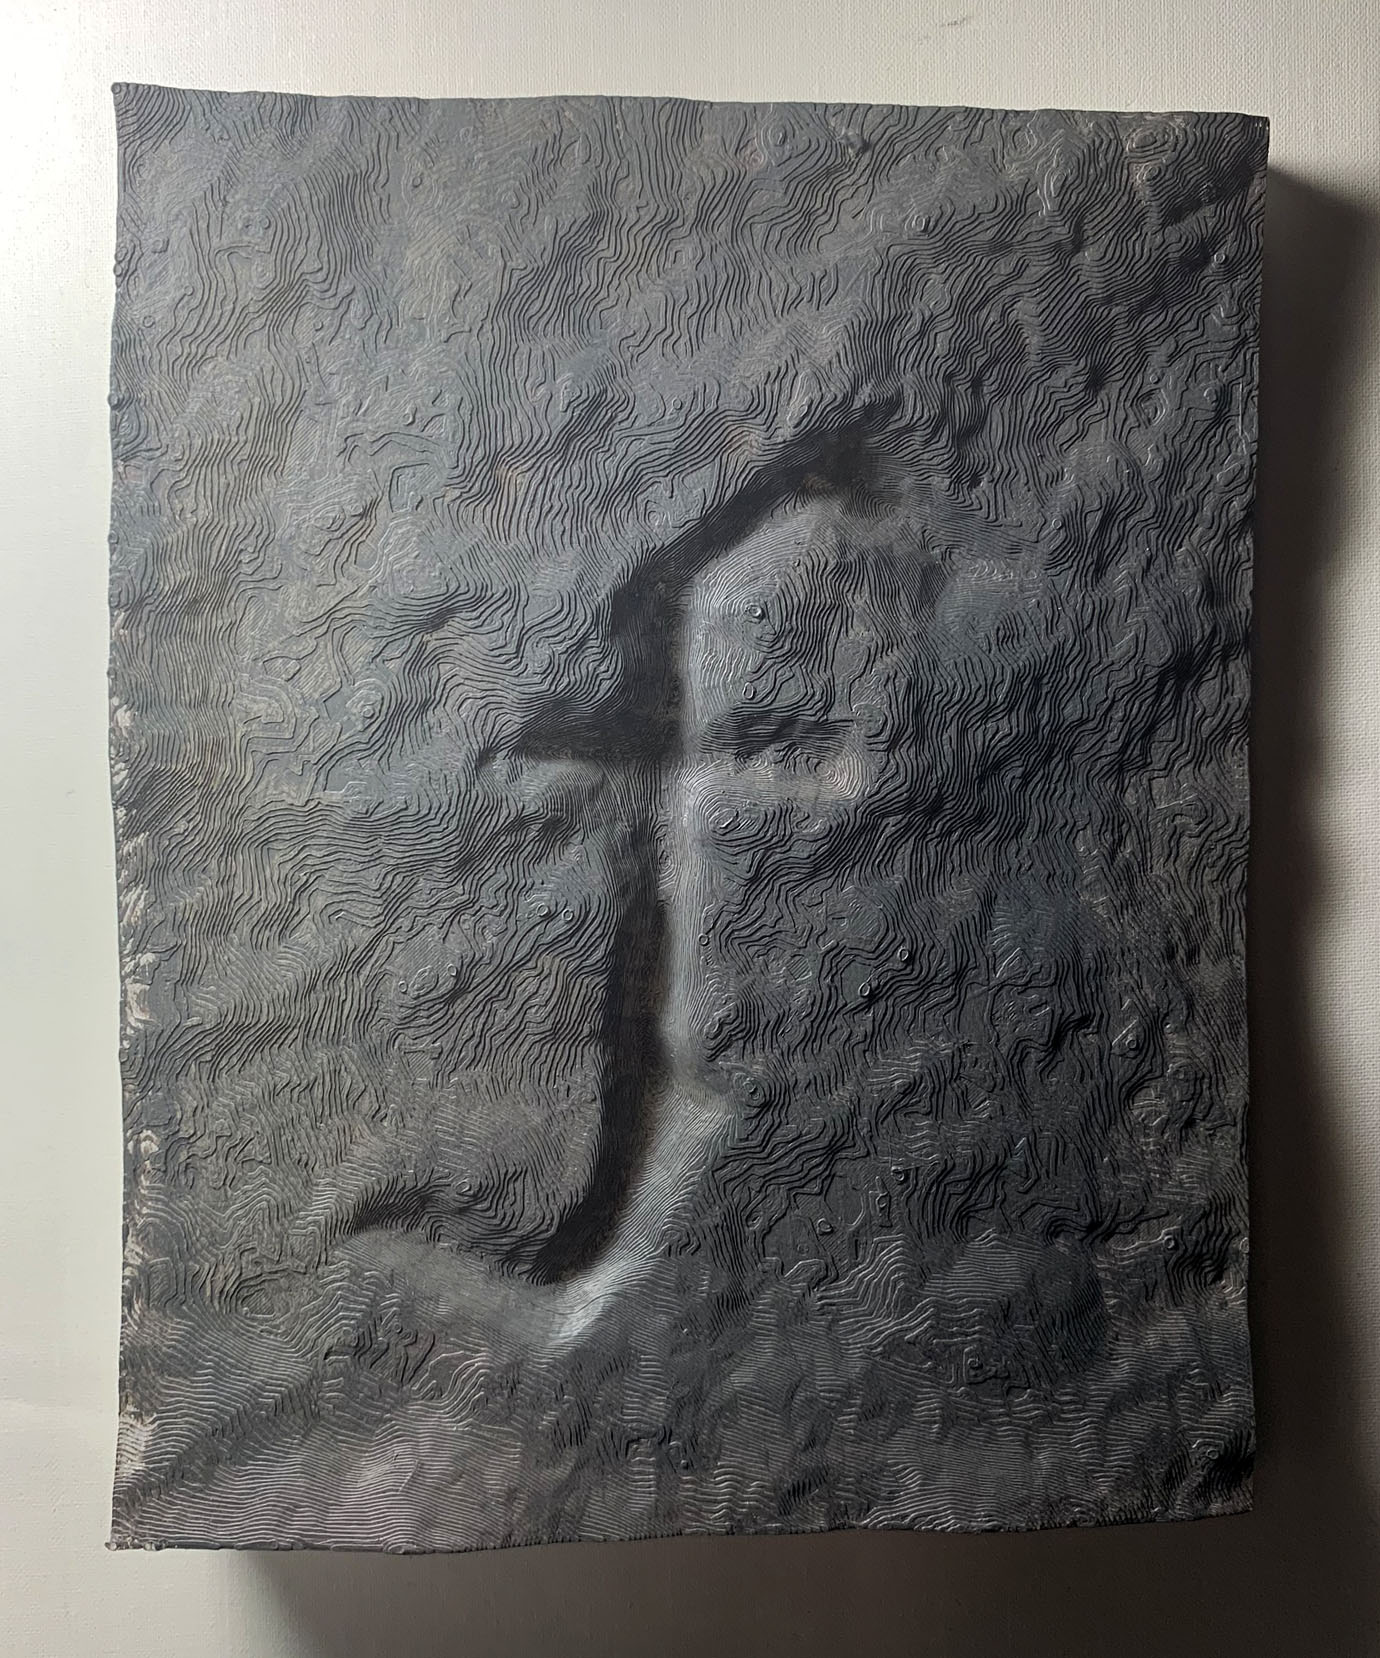 A 3D printed block of a rocky surface with a rendering of the letter 'F' in a graffiti font.